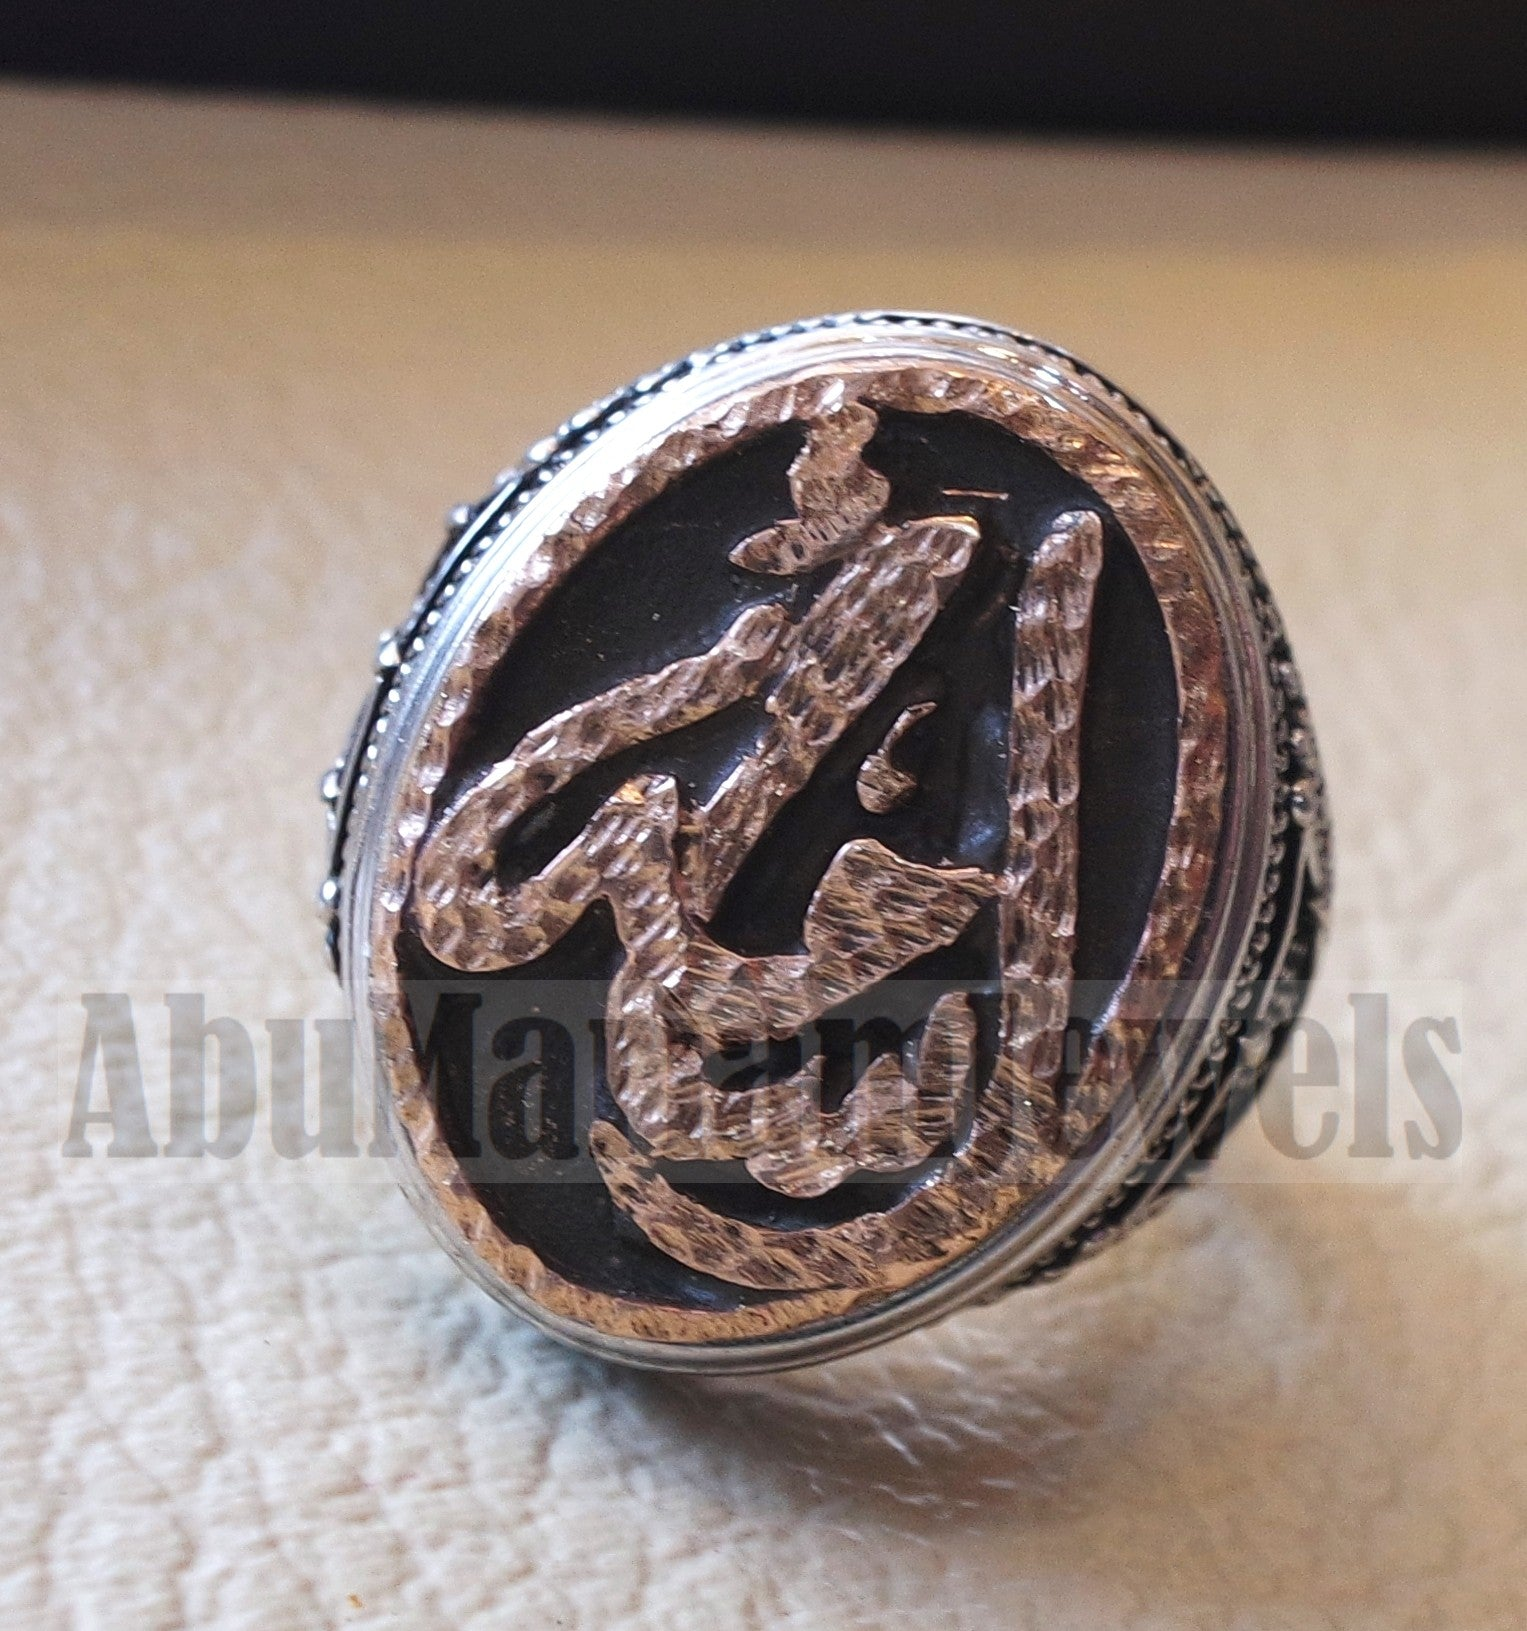 Customized Arabic calligraphy names ring personalized antique jewelry style sterling silver 925 and bronze any size TSB1002 خاتم اسم تفصيل